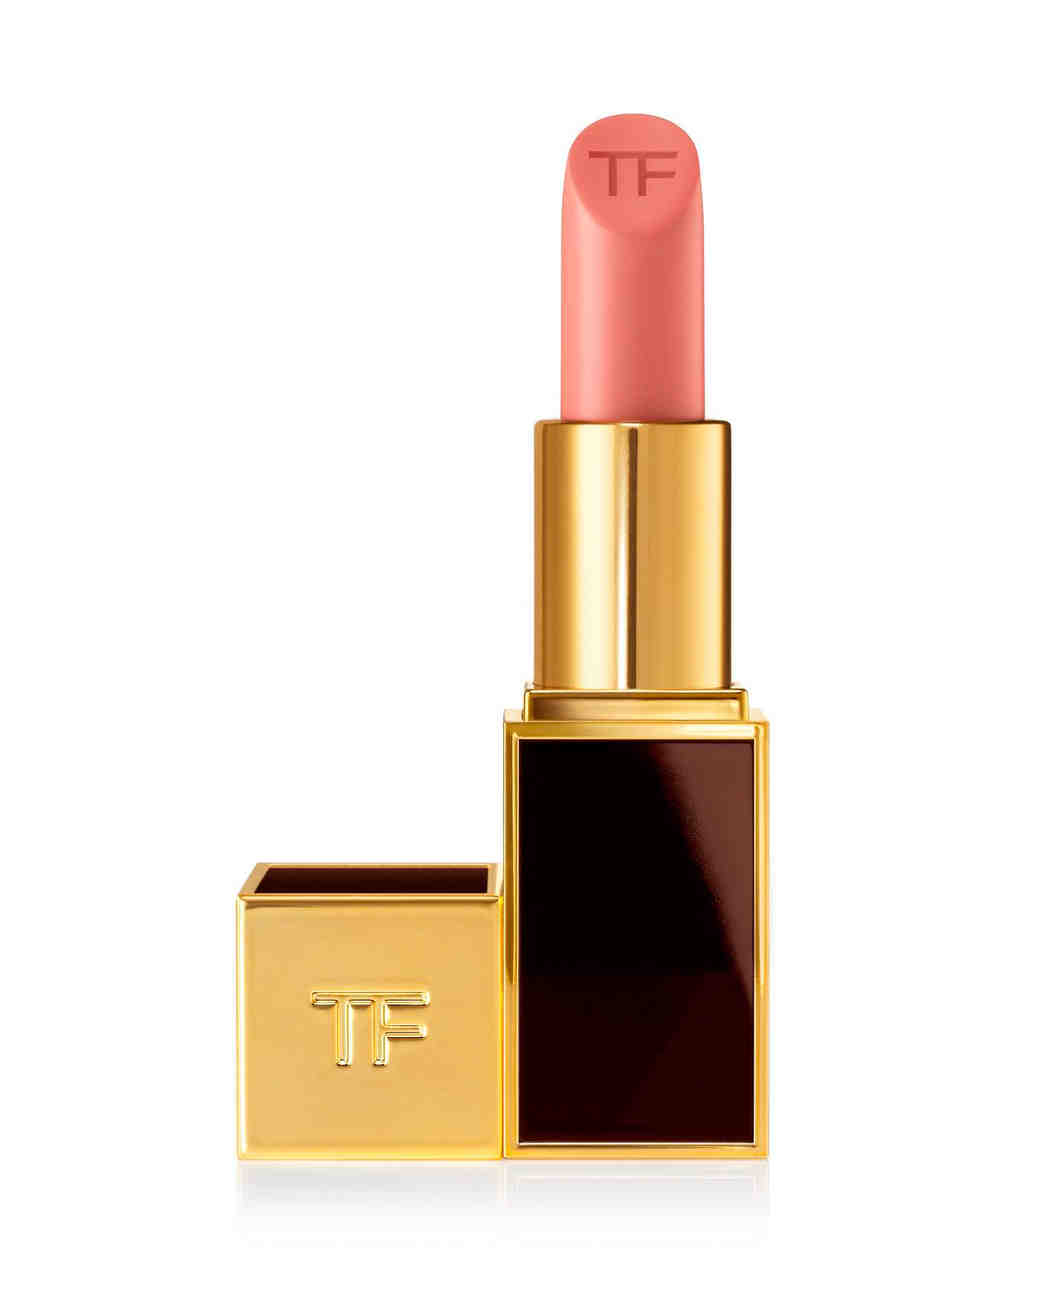 matte-lipsticks-tom-ford-lip-color-matte-0915.jpg